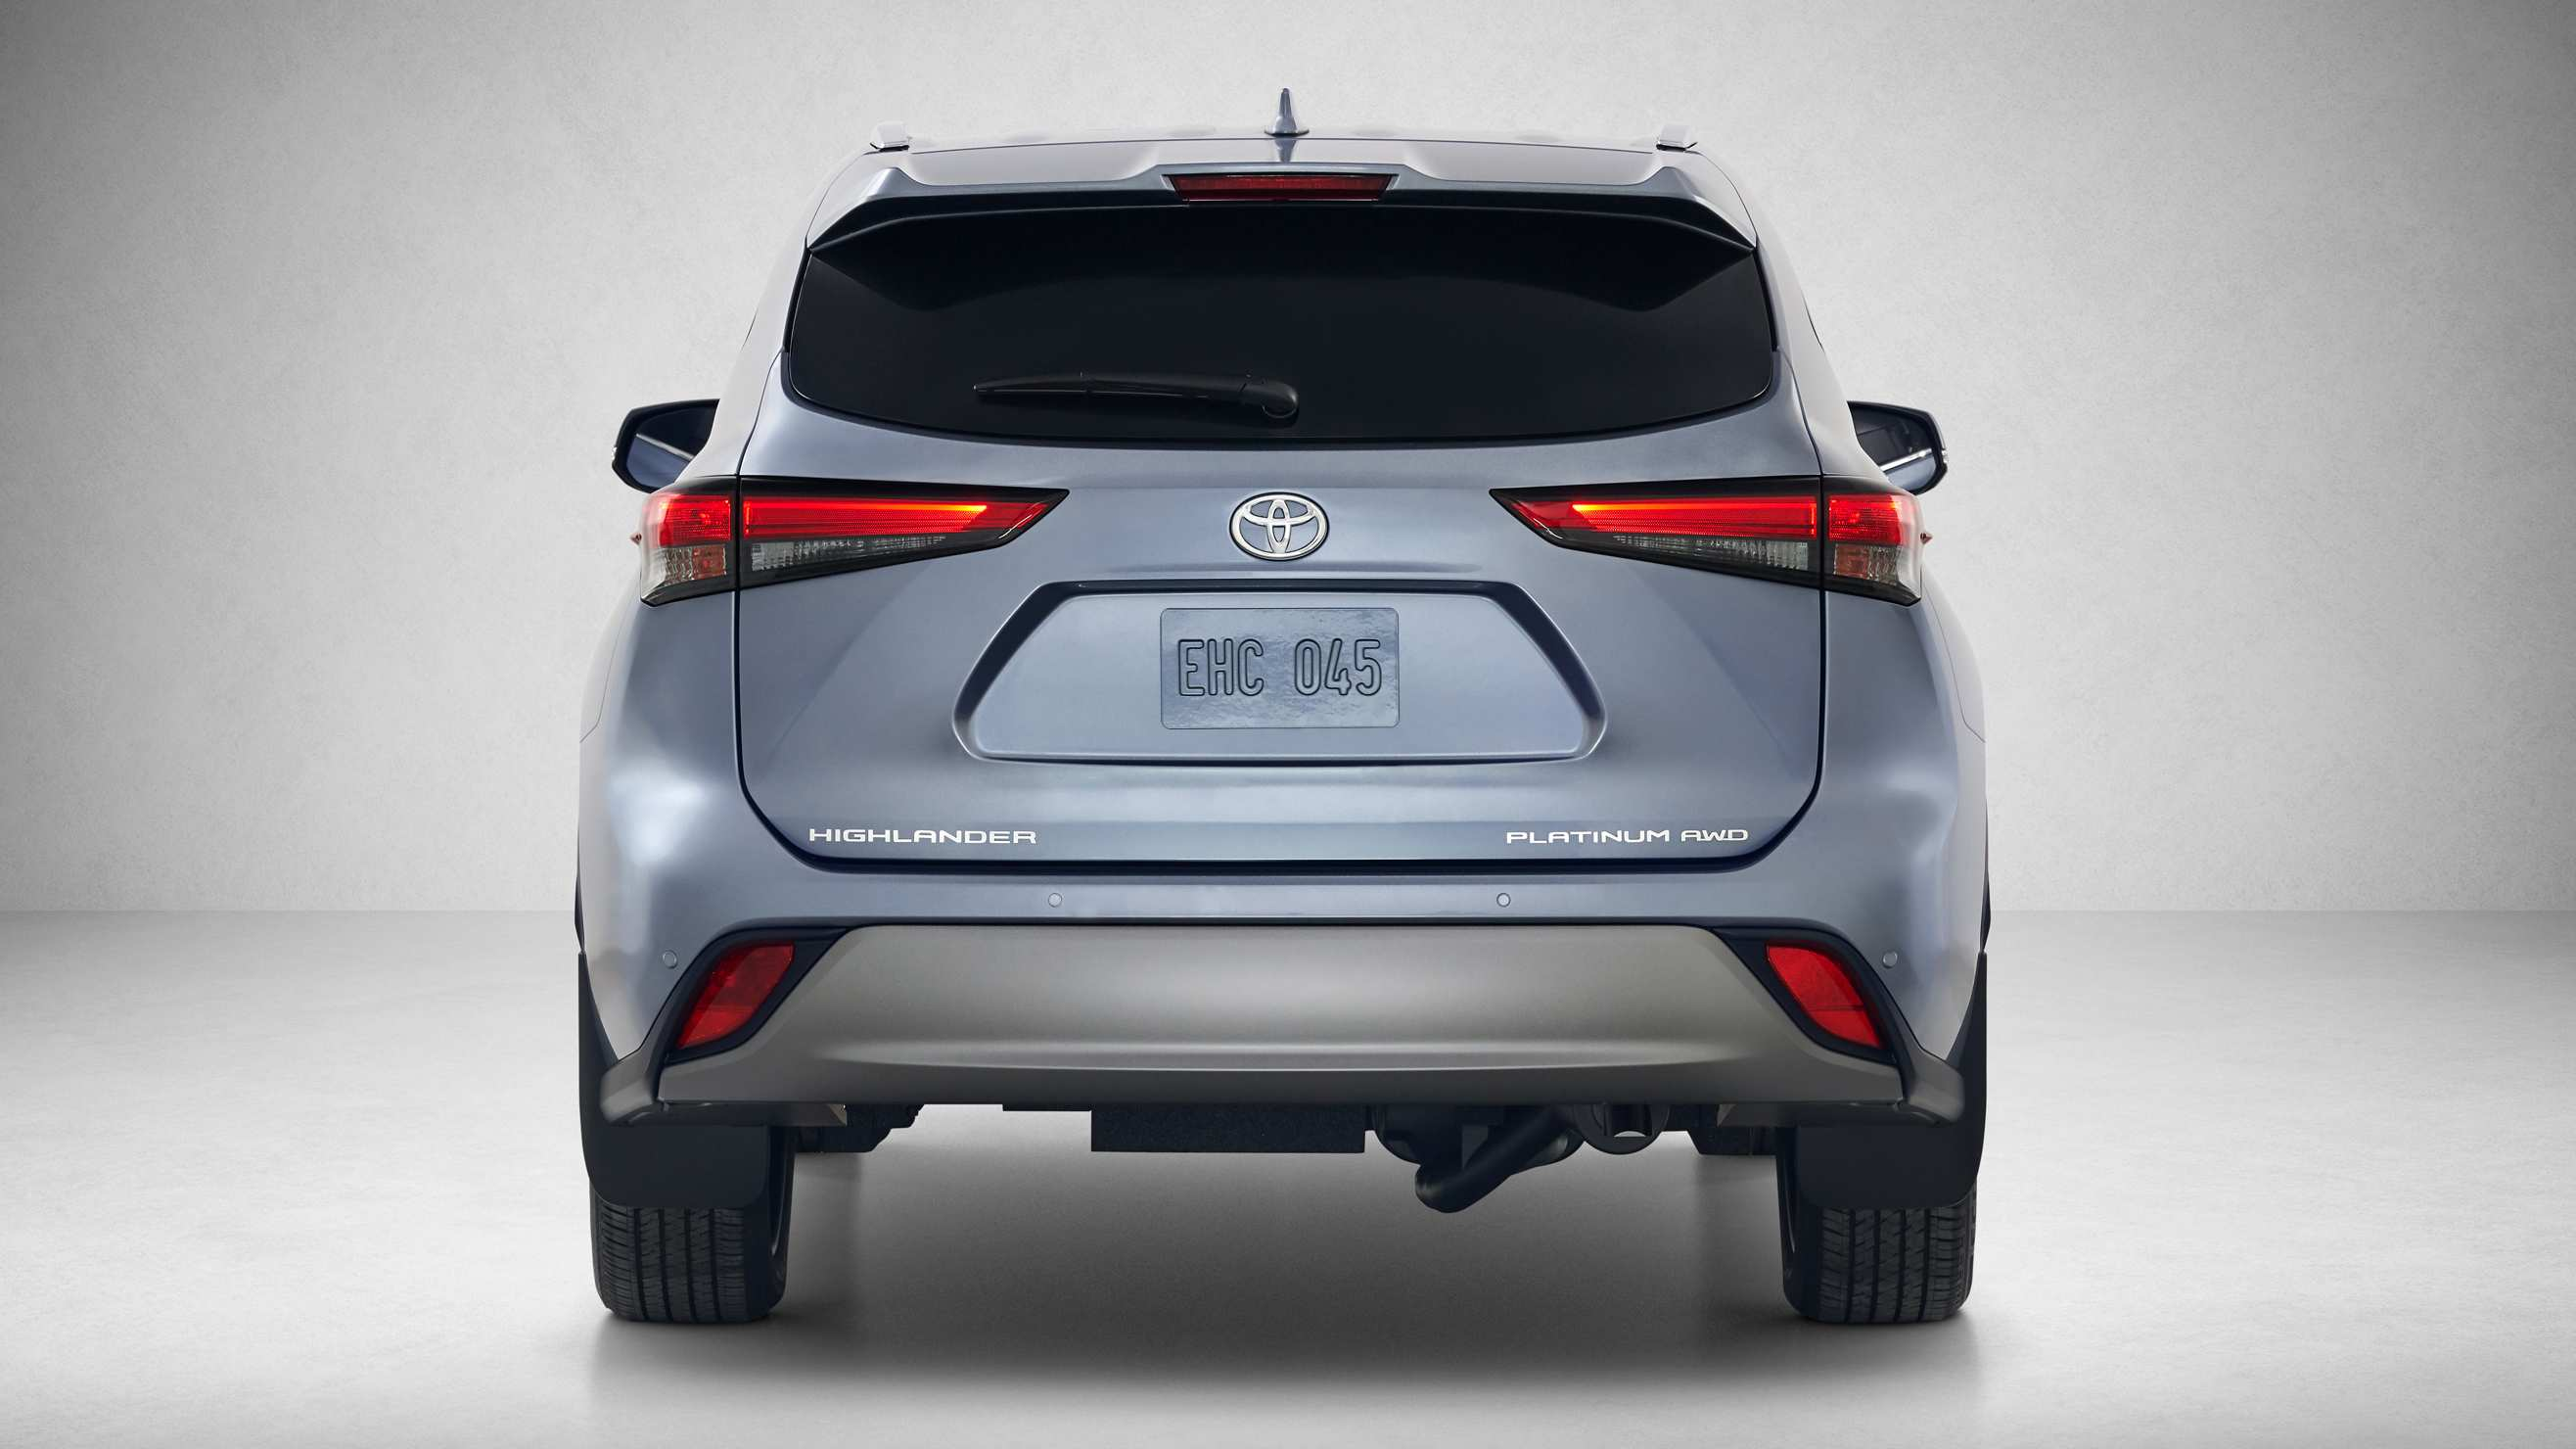 65 Best Review Toyota Kluger 2020 Australia Release Date Release Date for Toyota Kluger 2020 Australia Release Date